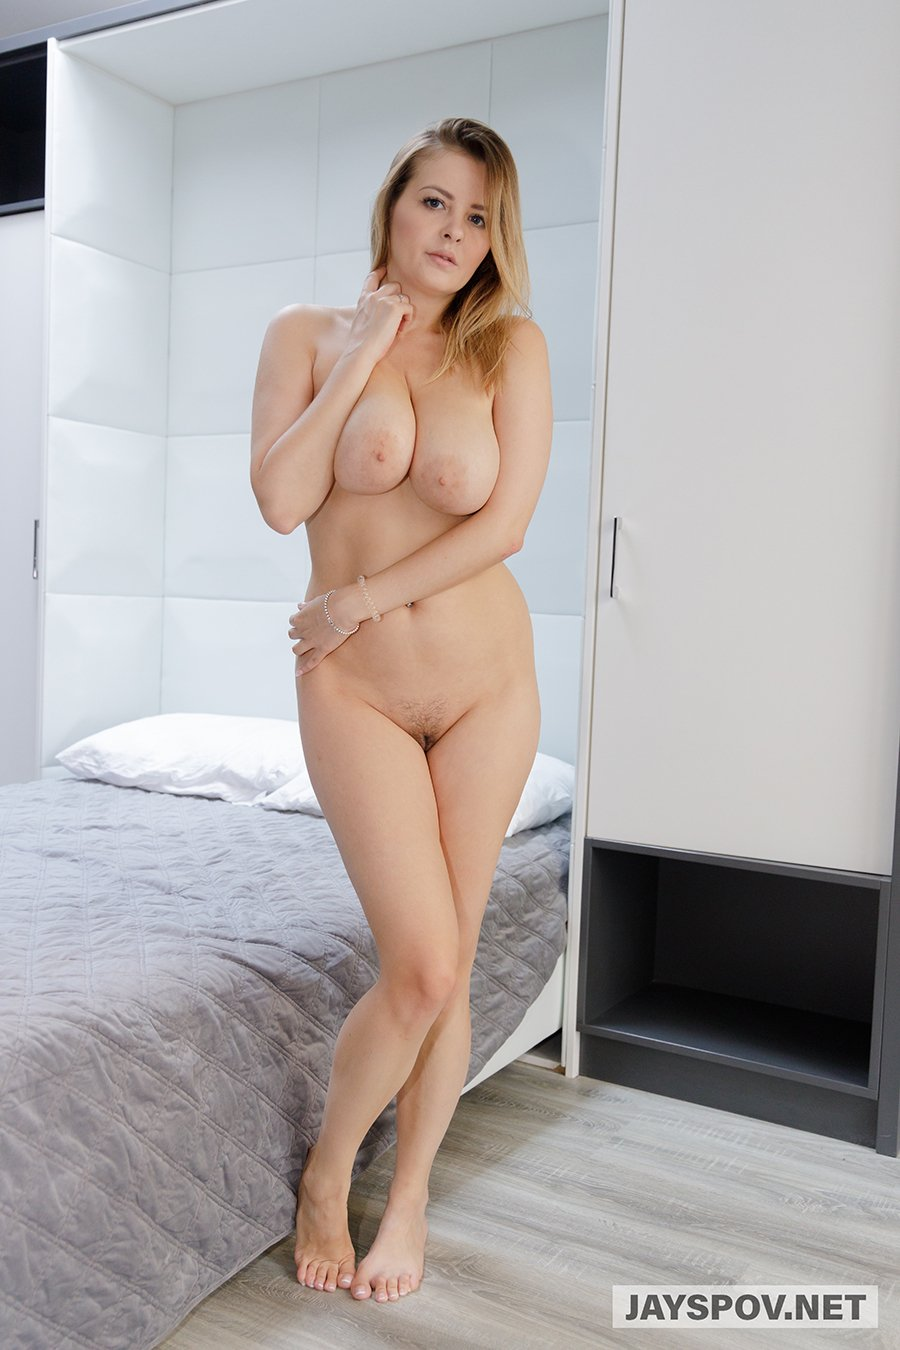 Jays POV: Candy Alexa is a Horny Russian Milf with 34 DD Natural Tits